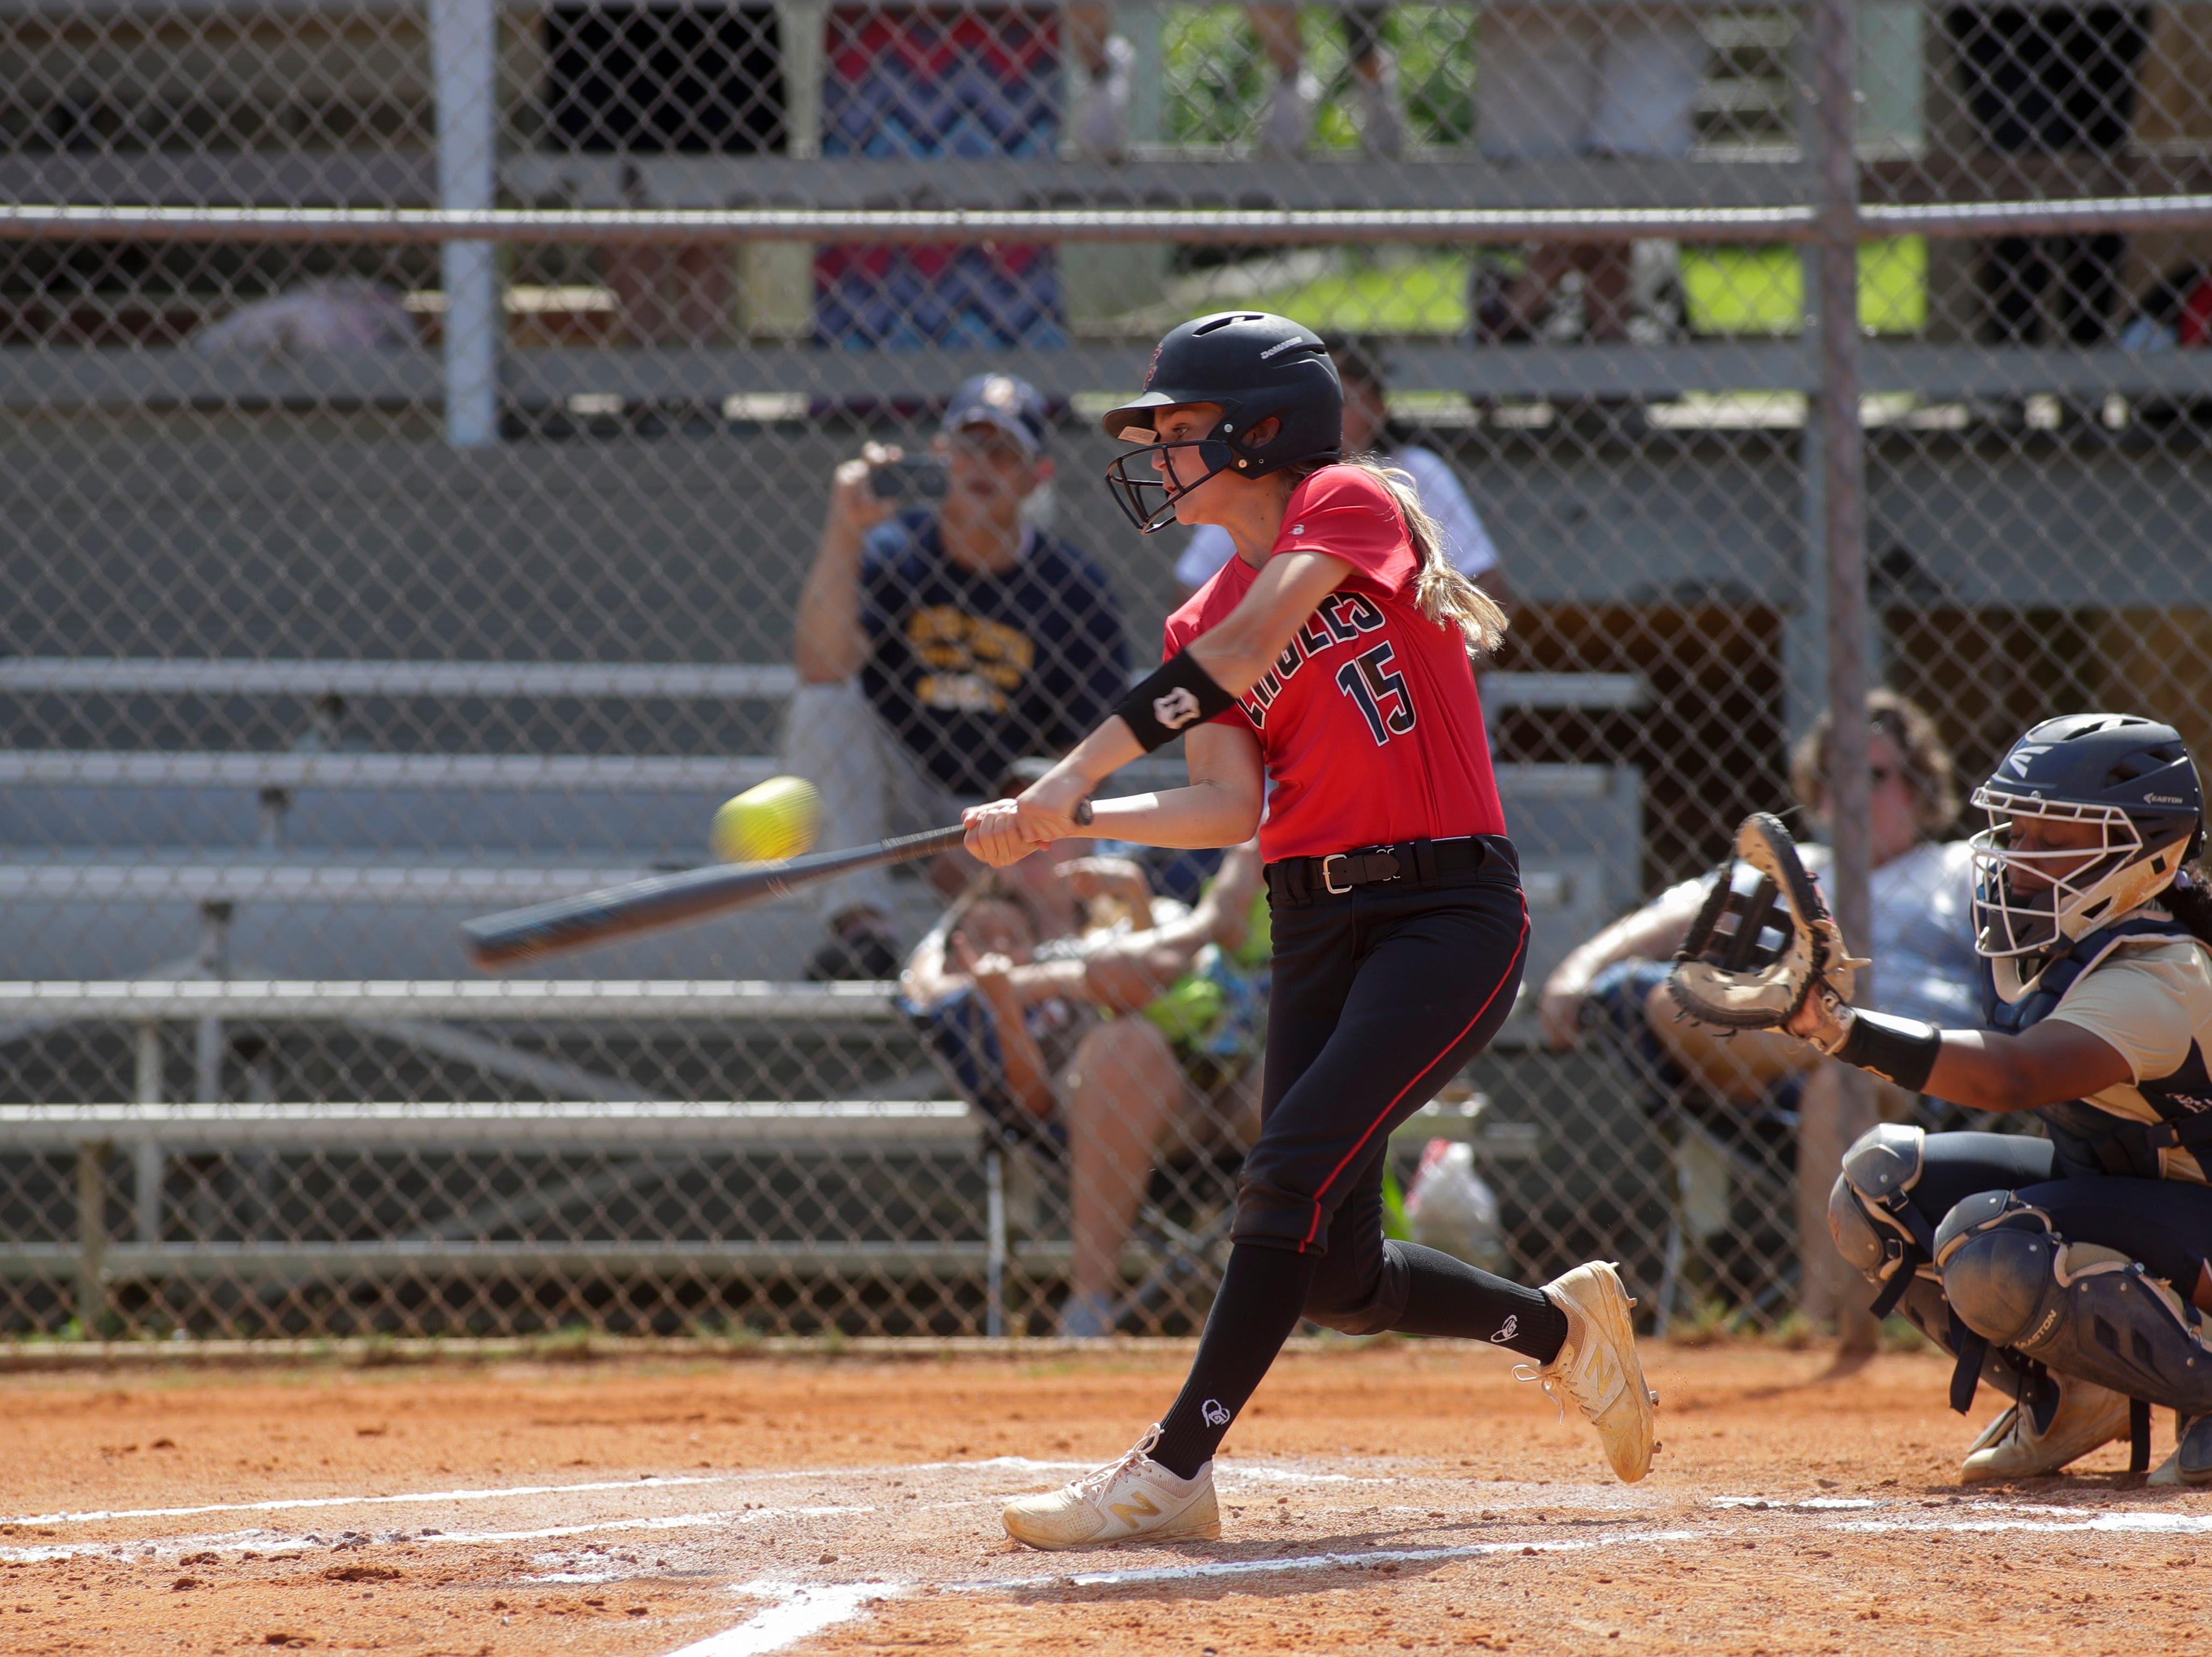 North Florida Christian's Emma Brice (15) swings during the 1-3A regional final game between NFC and University Christian at NFC Tuesday, May 14, 2019. UC defeated NFC 16 to 11 to advance to the state tournament.